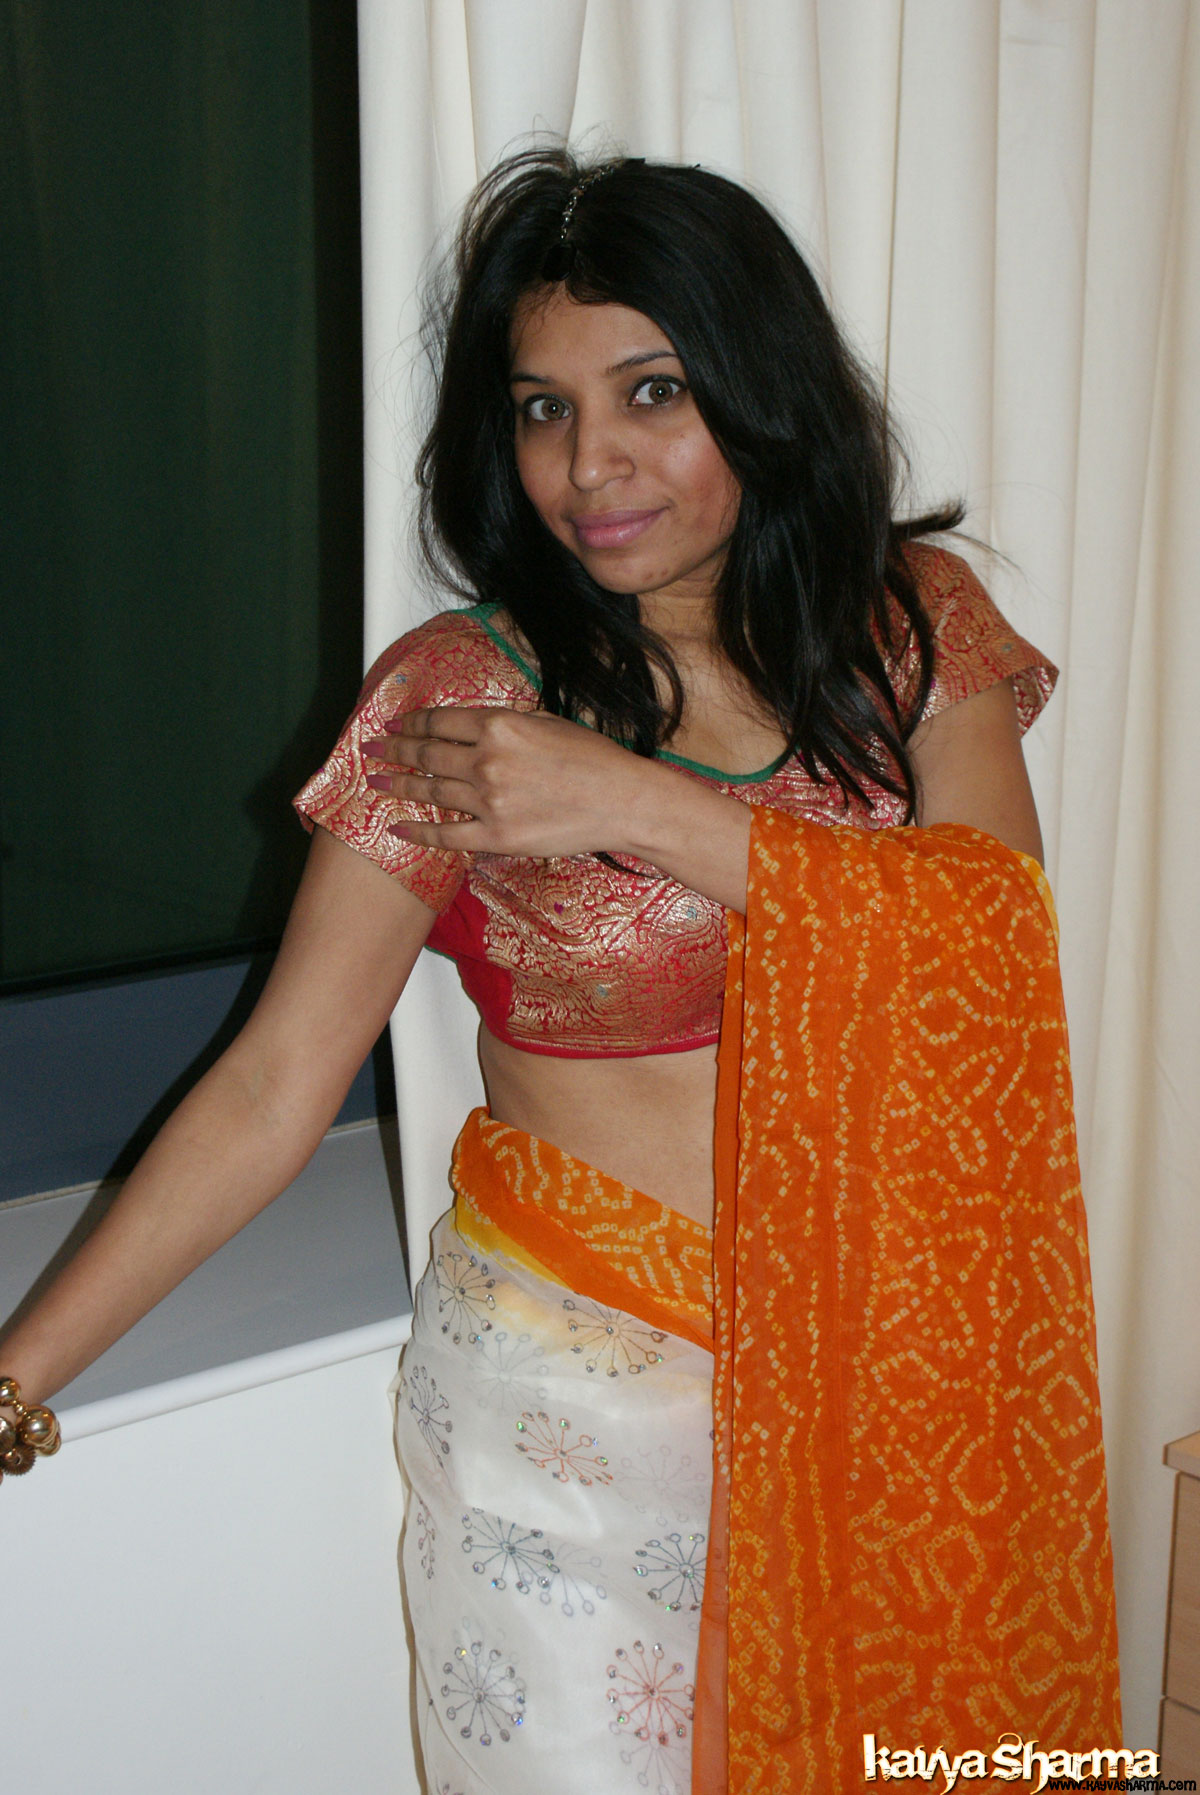 Iab picture gallery 16. Kavya in banarsi sari doing a strip show for her fans